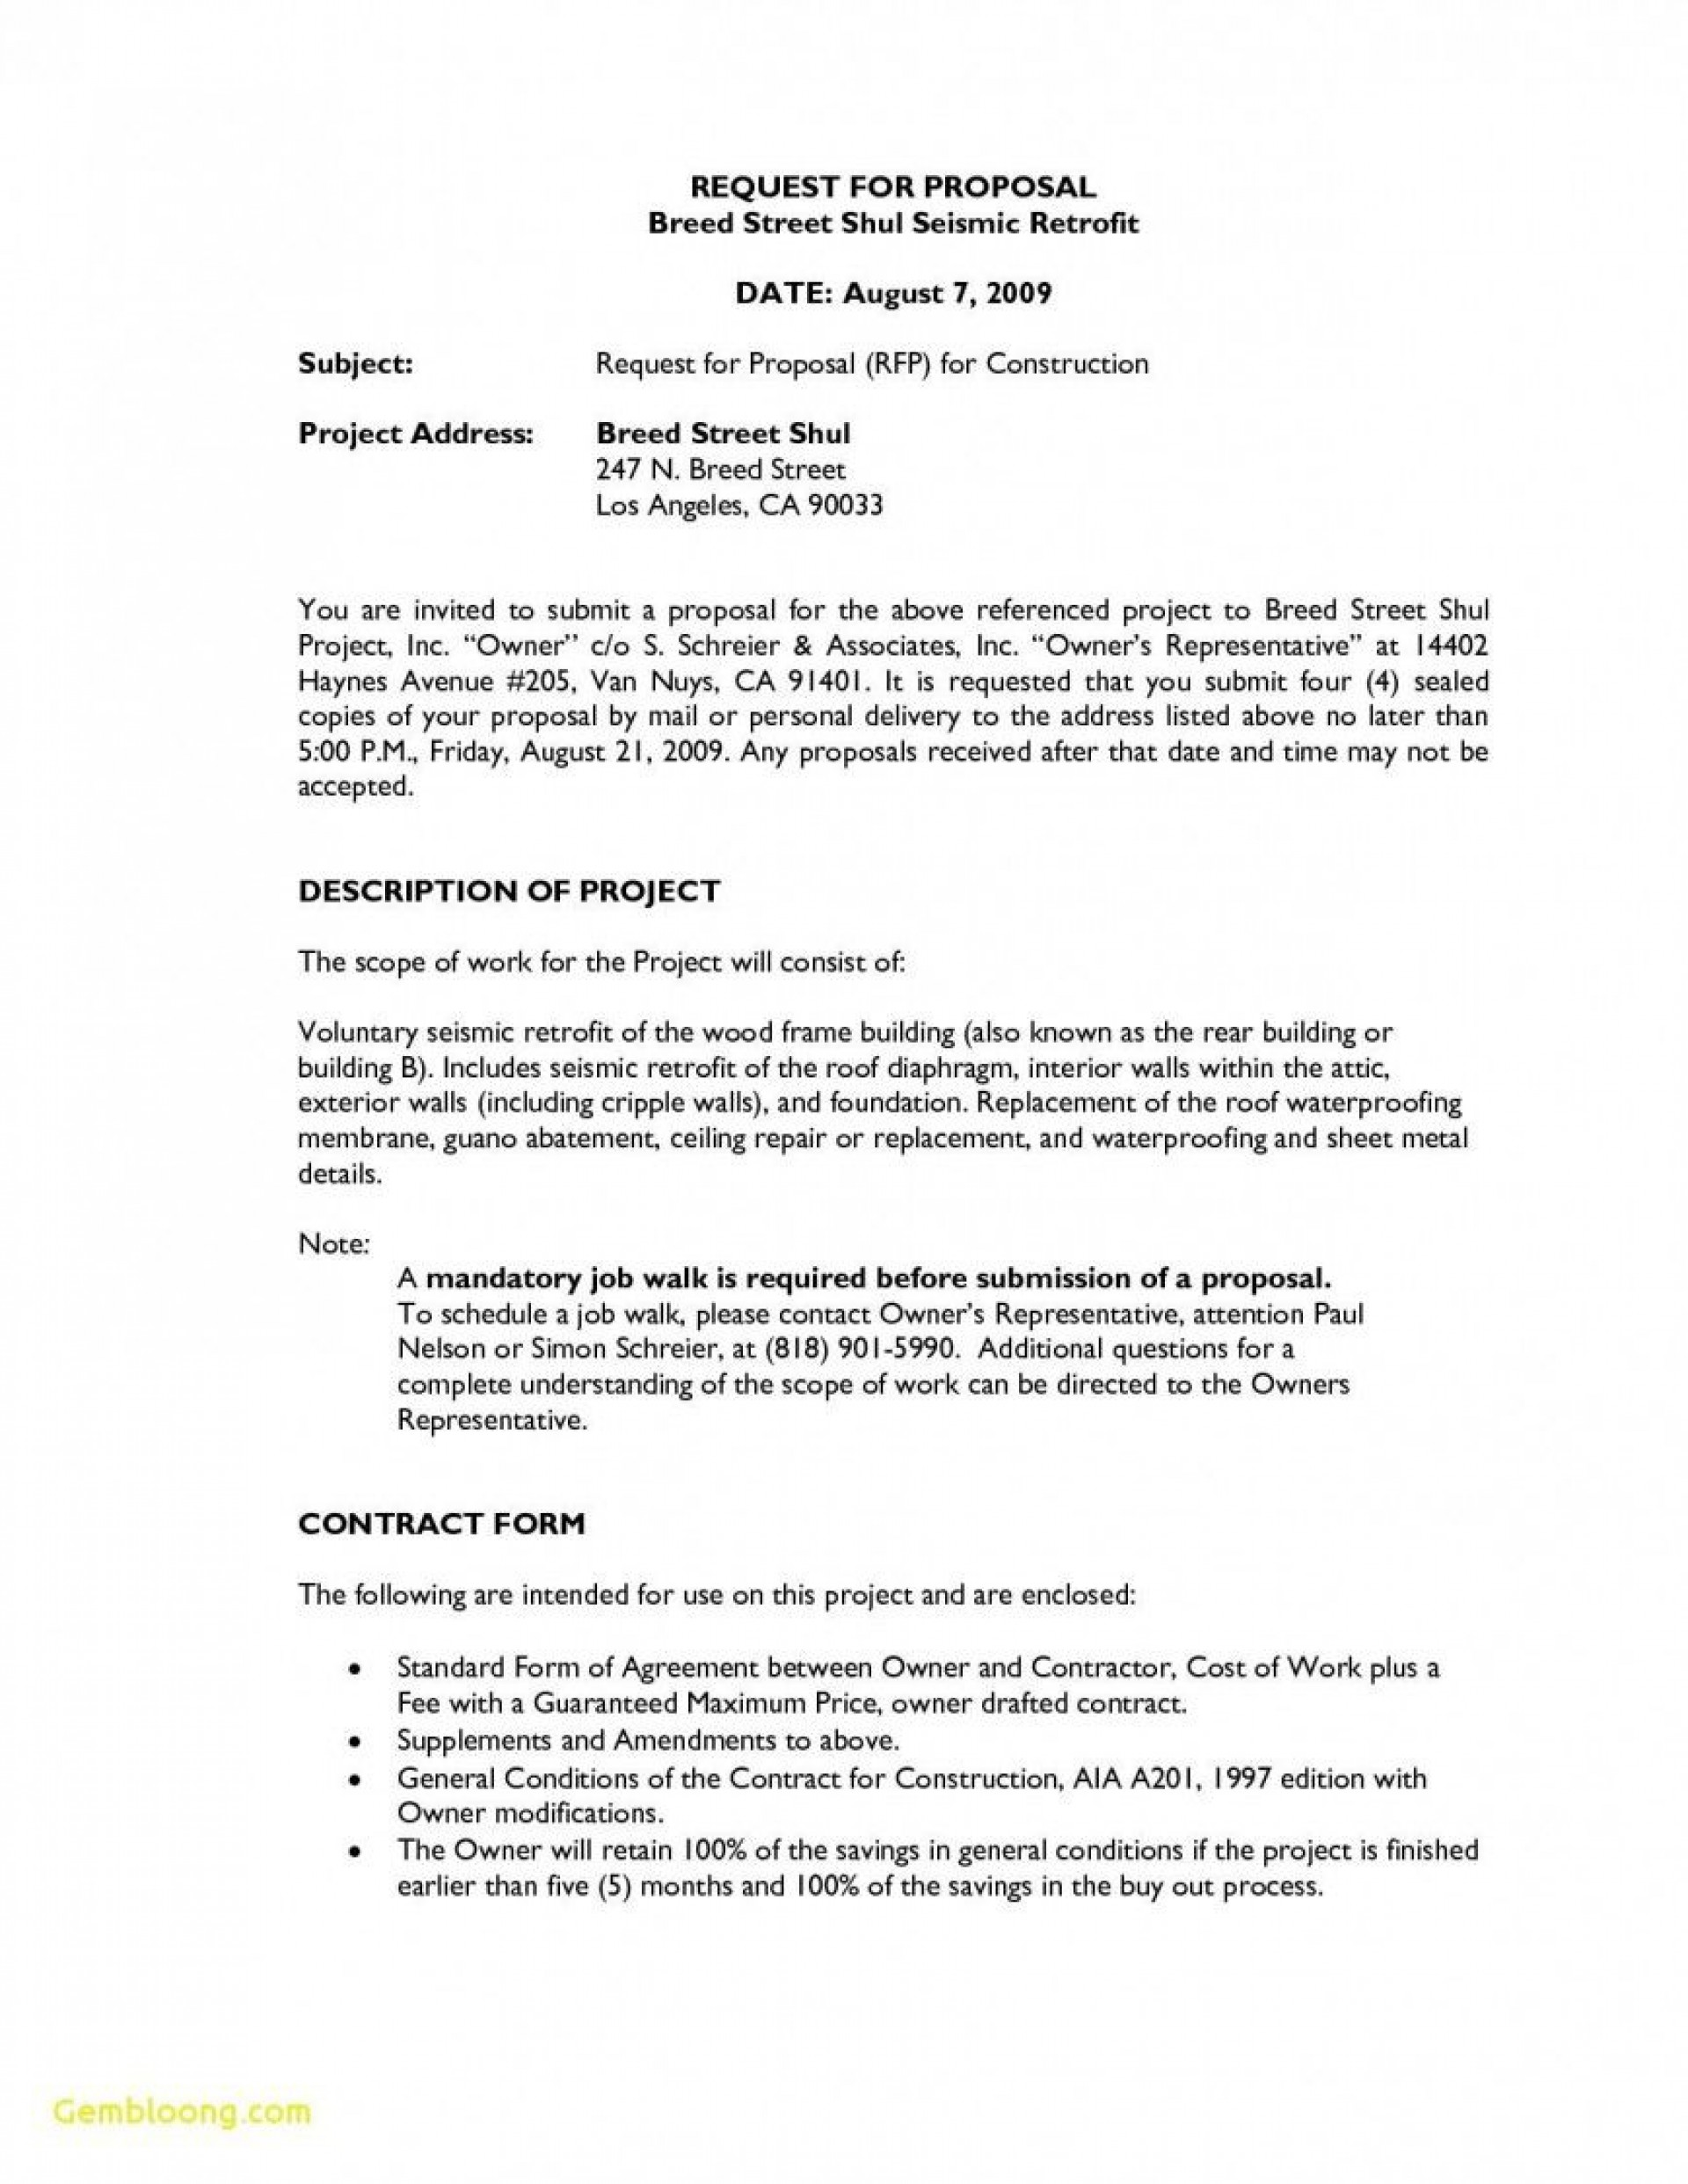 007 Excellent Request For Proposal Template Word Free High Def 1920